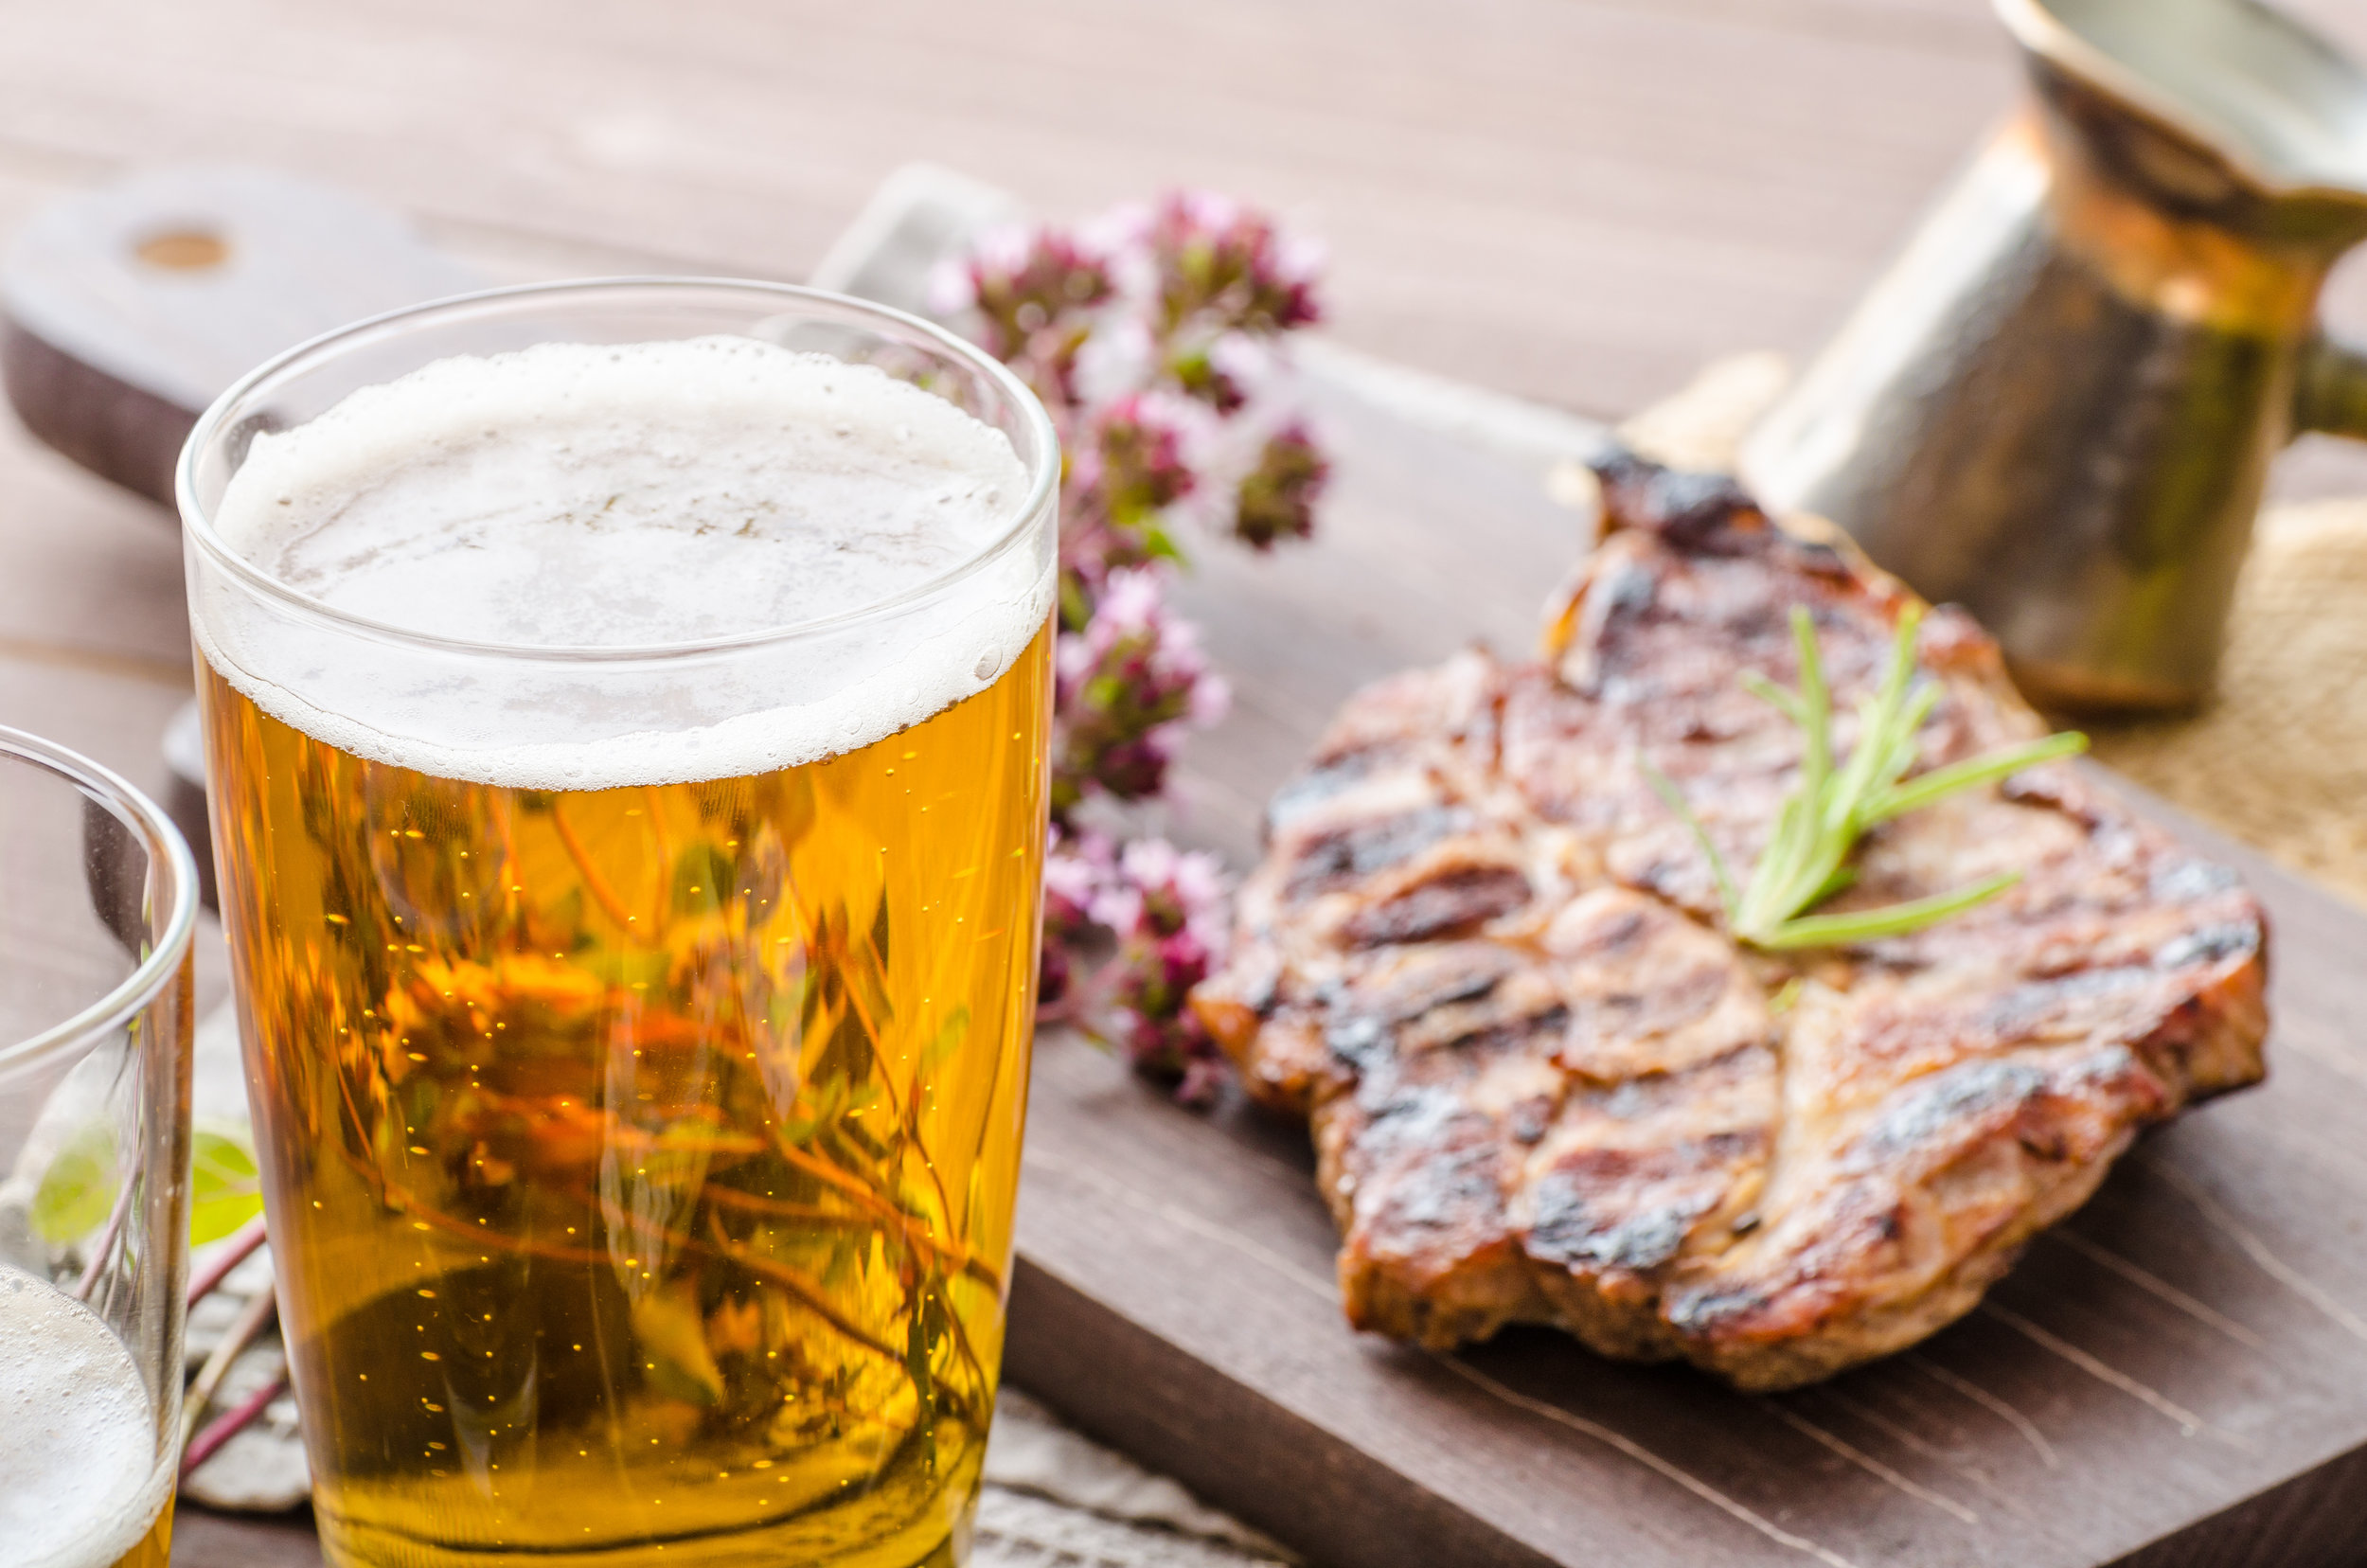 20161101 - Meat and Beer.jpeg